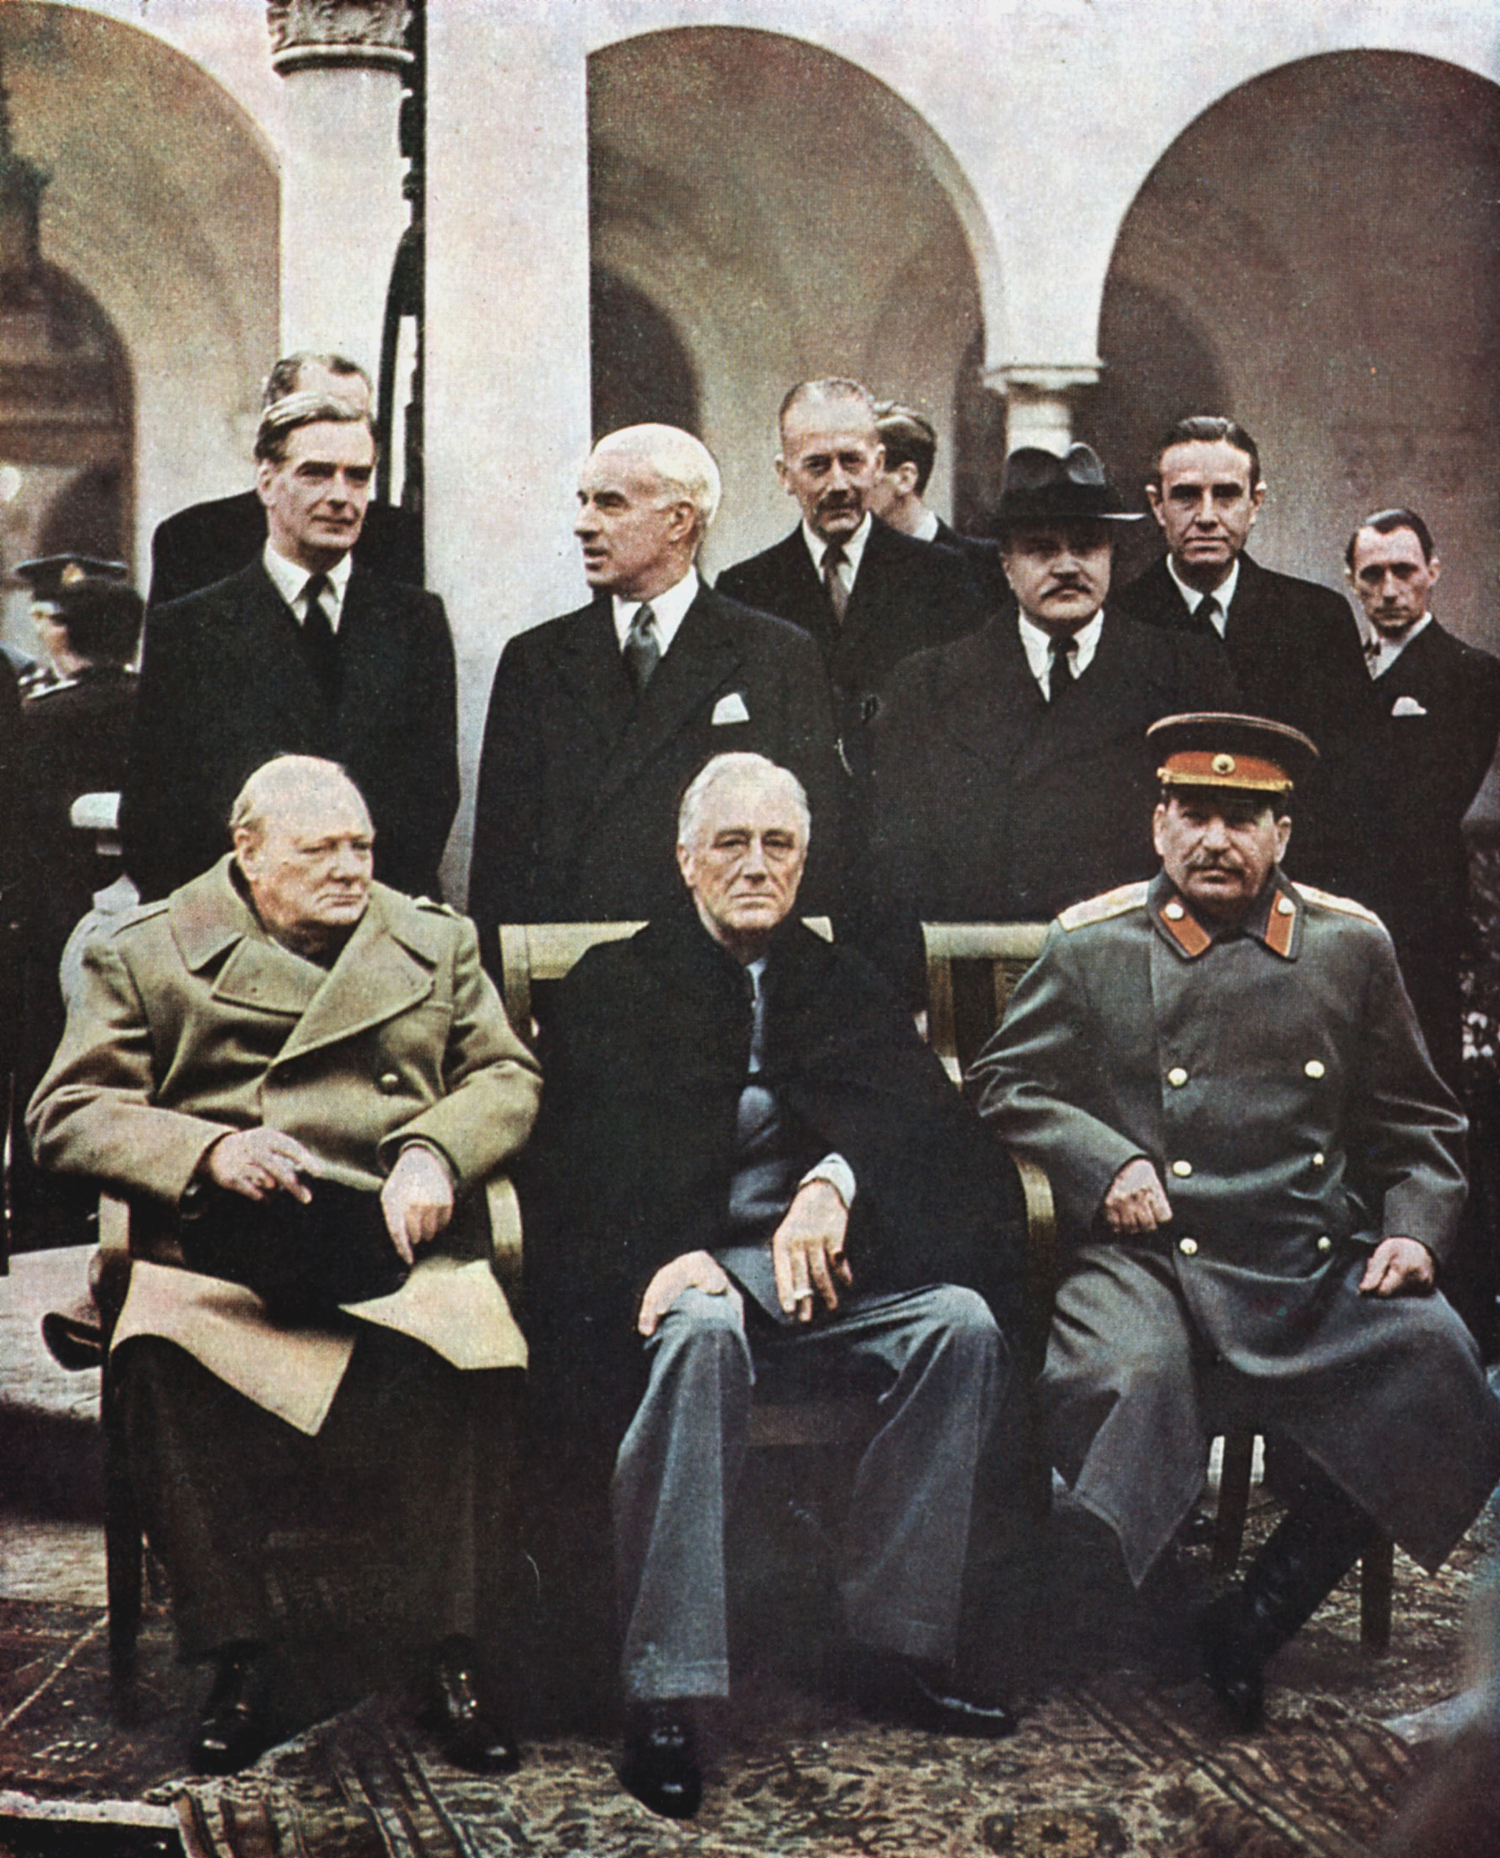 Coloured photograph of Yalta Conference of Allied leaders.